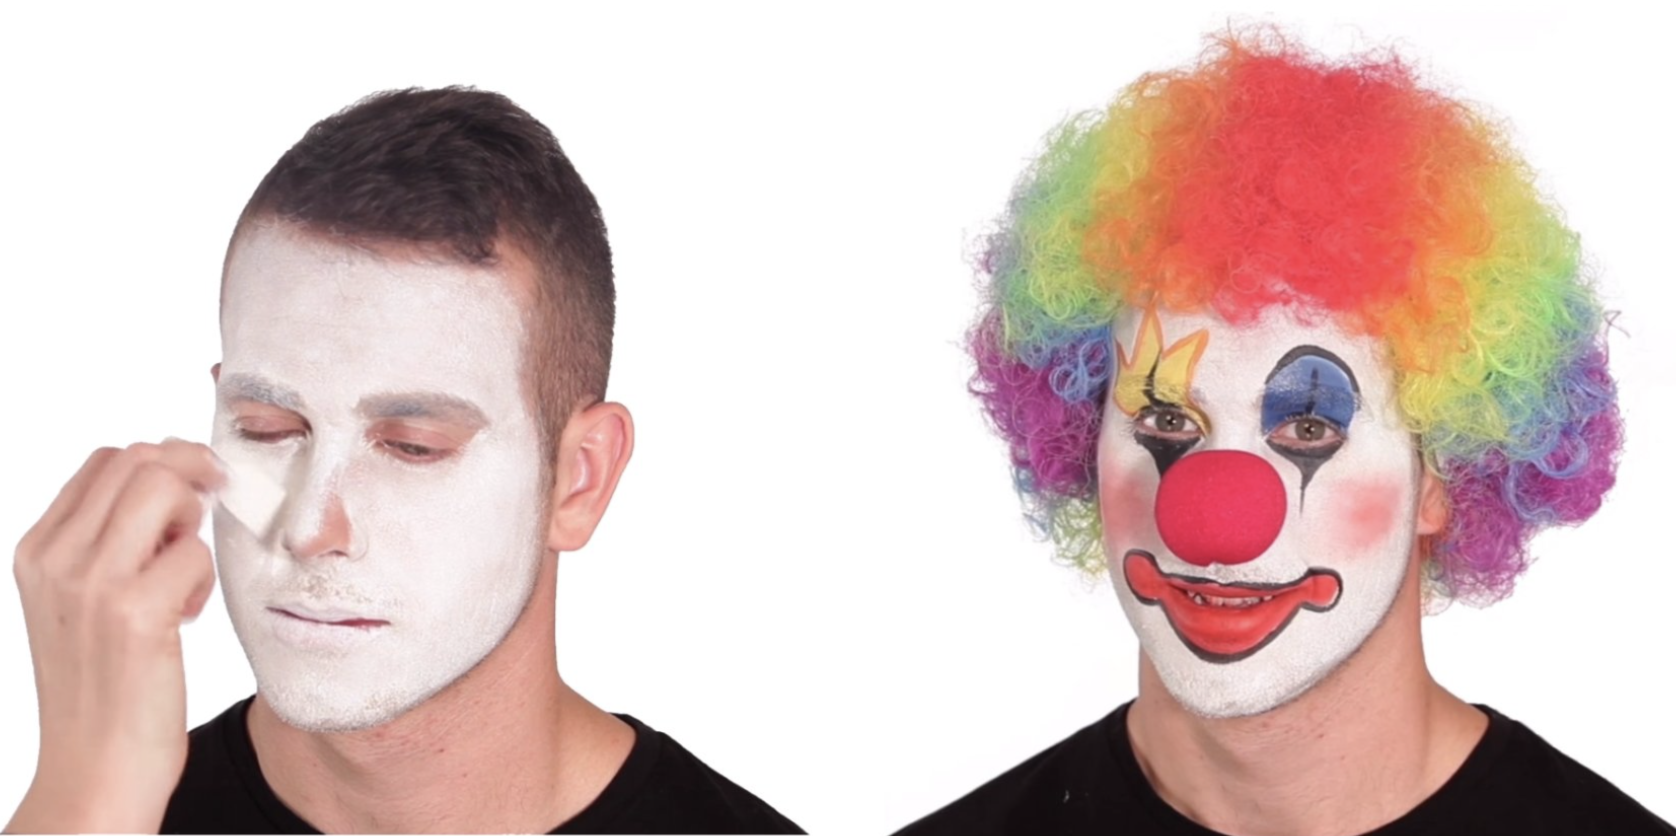 clown makeup meme